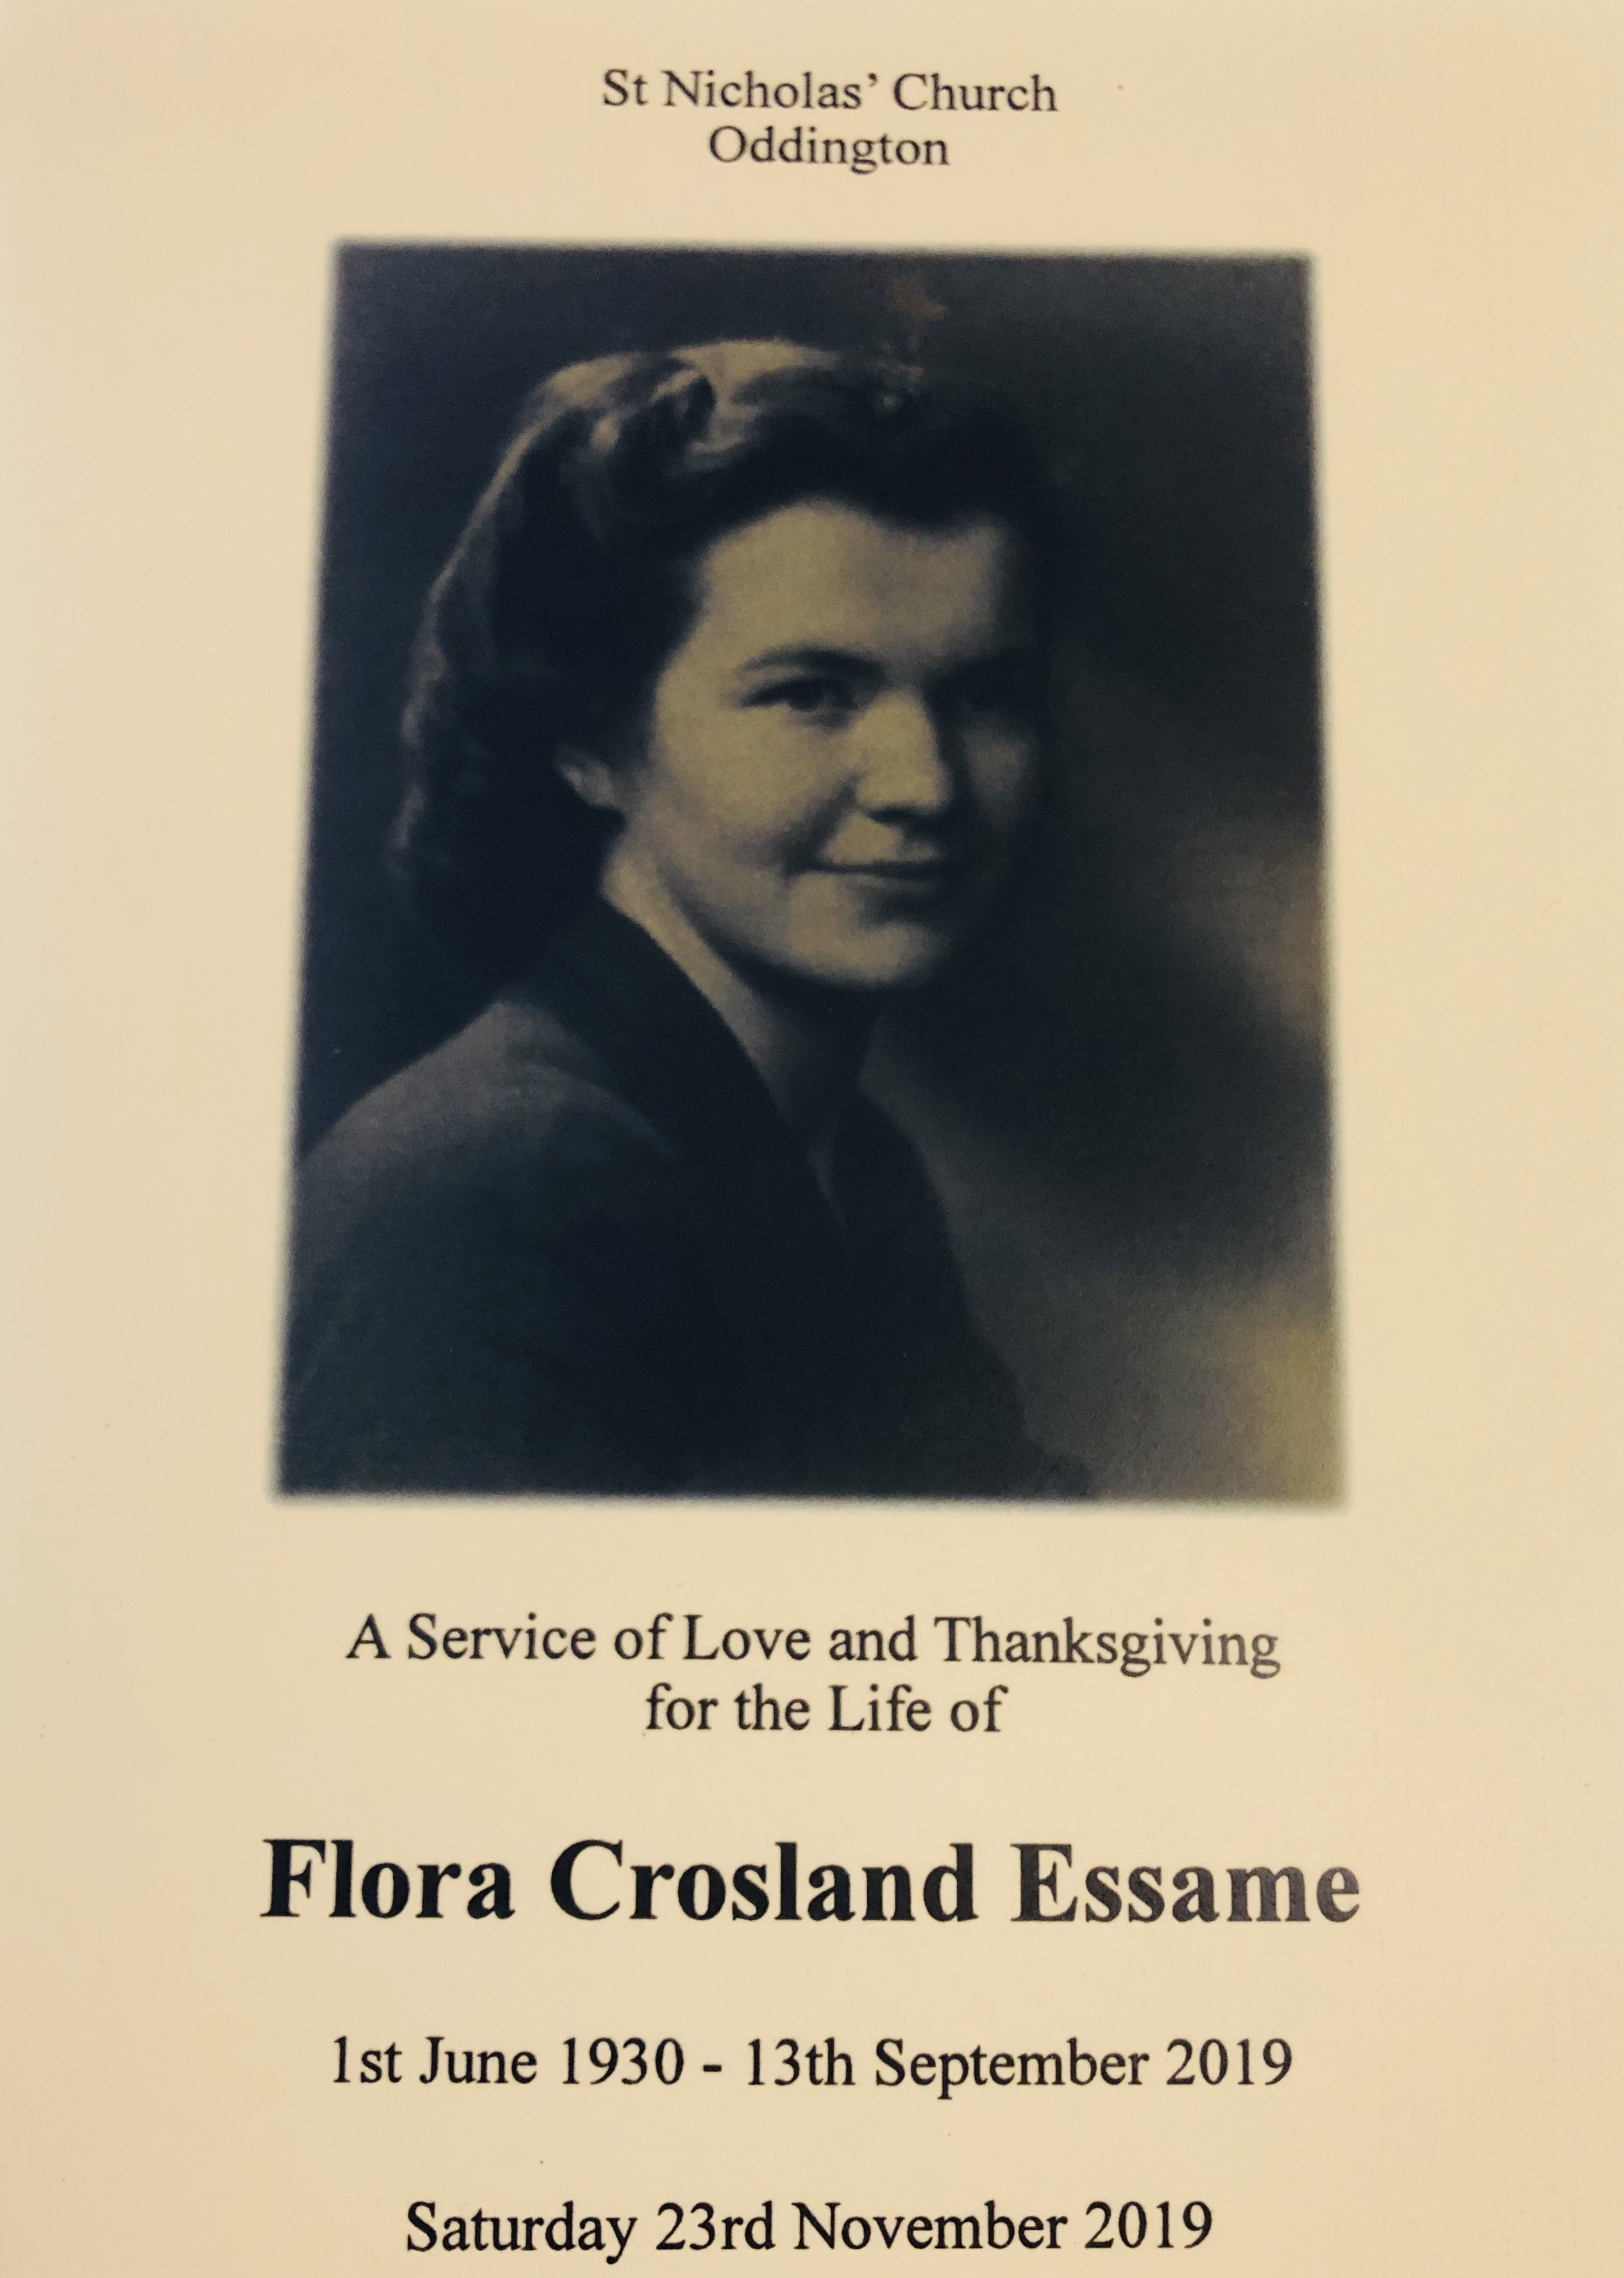 Flora Crosland Essame, Service of Thanksgiving